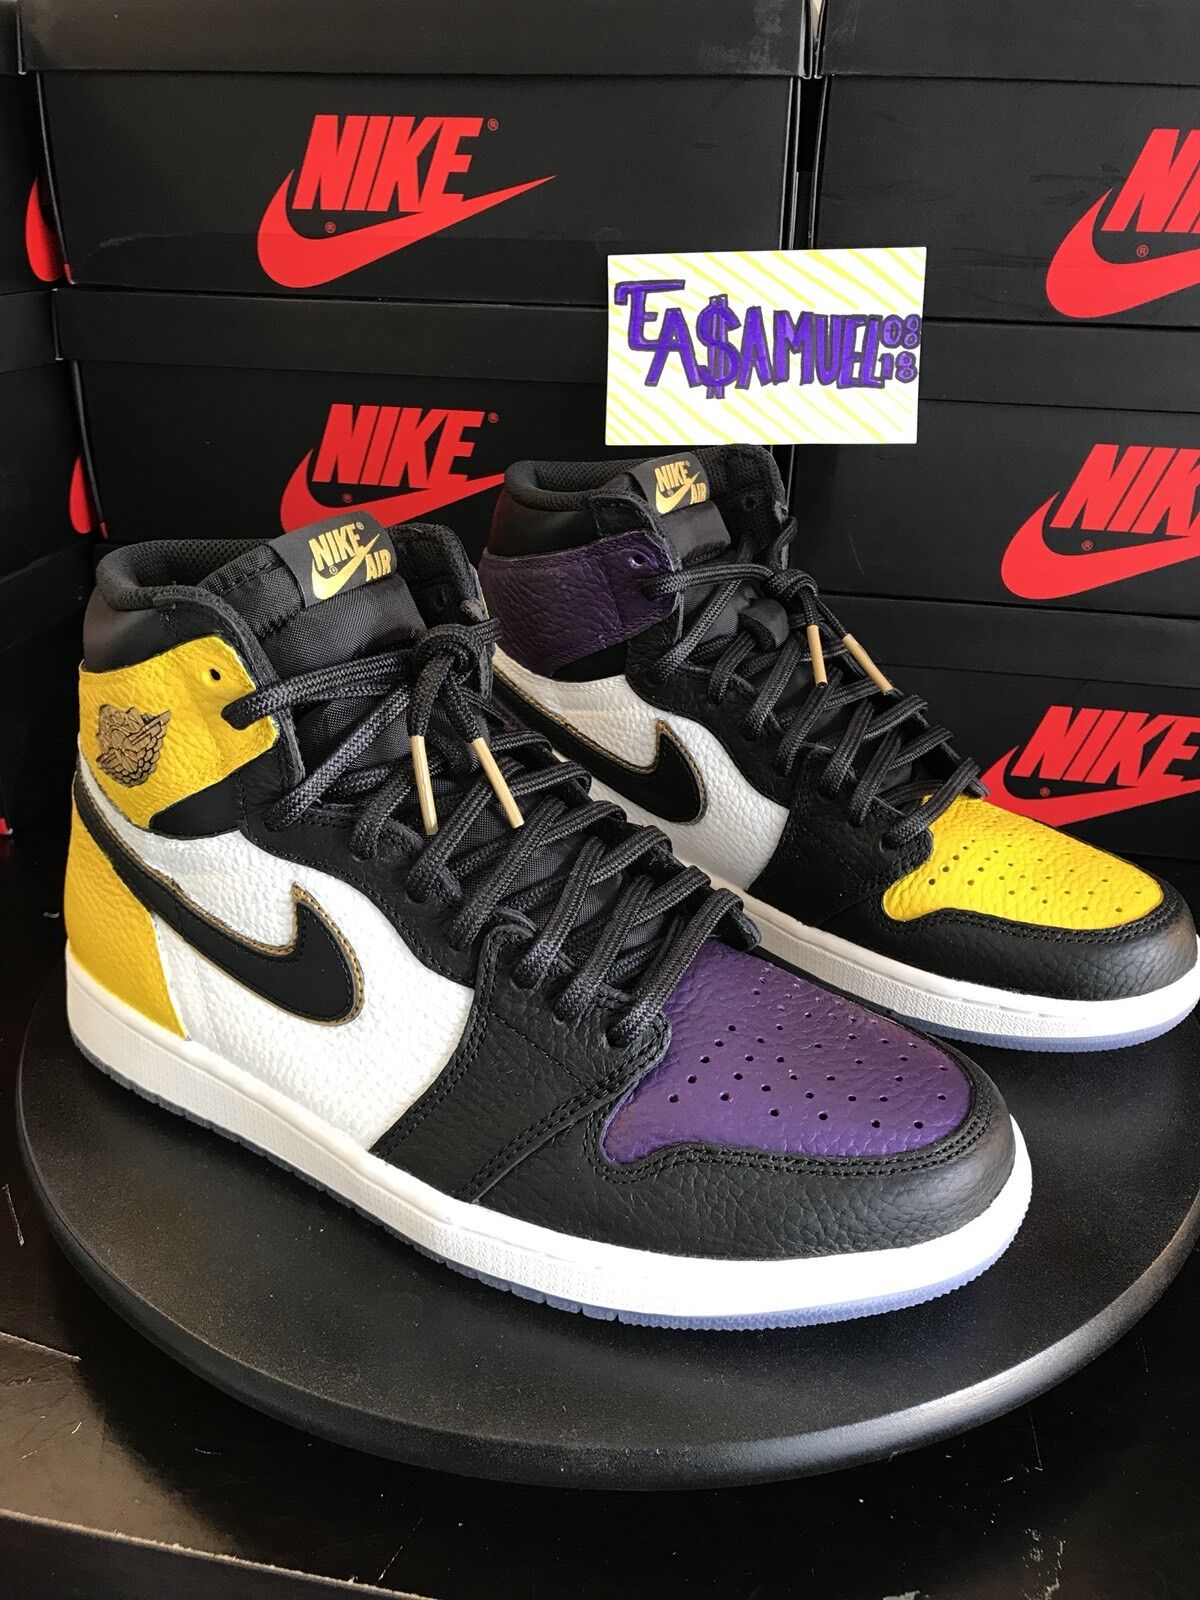 best authentic 47d74 726a5 ... switzerland air lakers jordan retro 1 hi lakers air lebron top 3 custom  sz10 wild casual